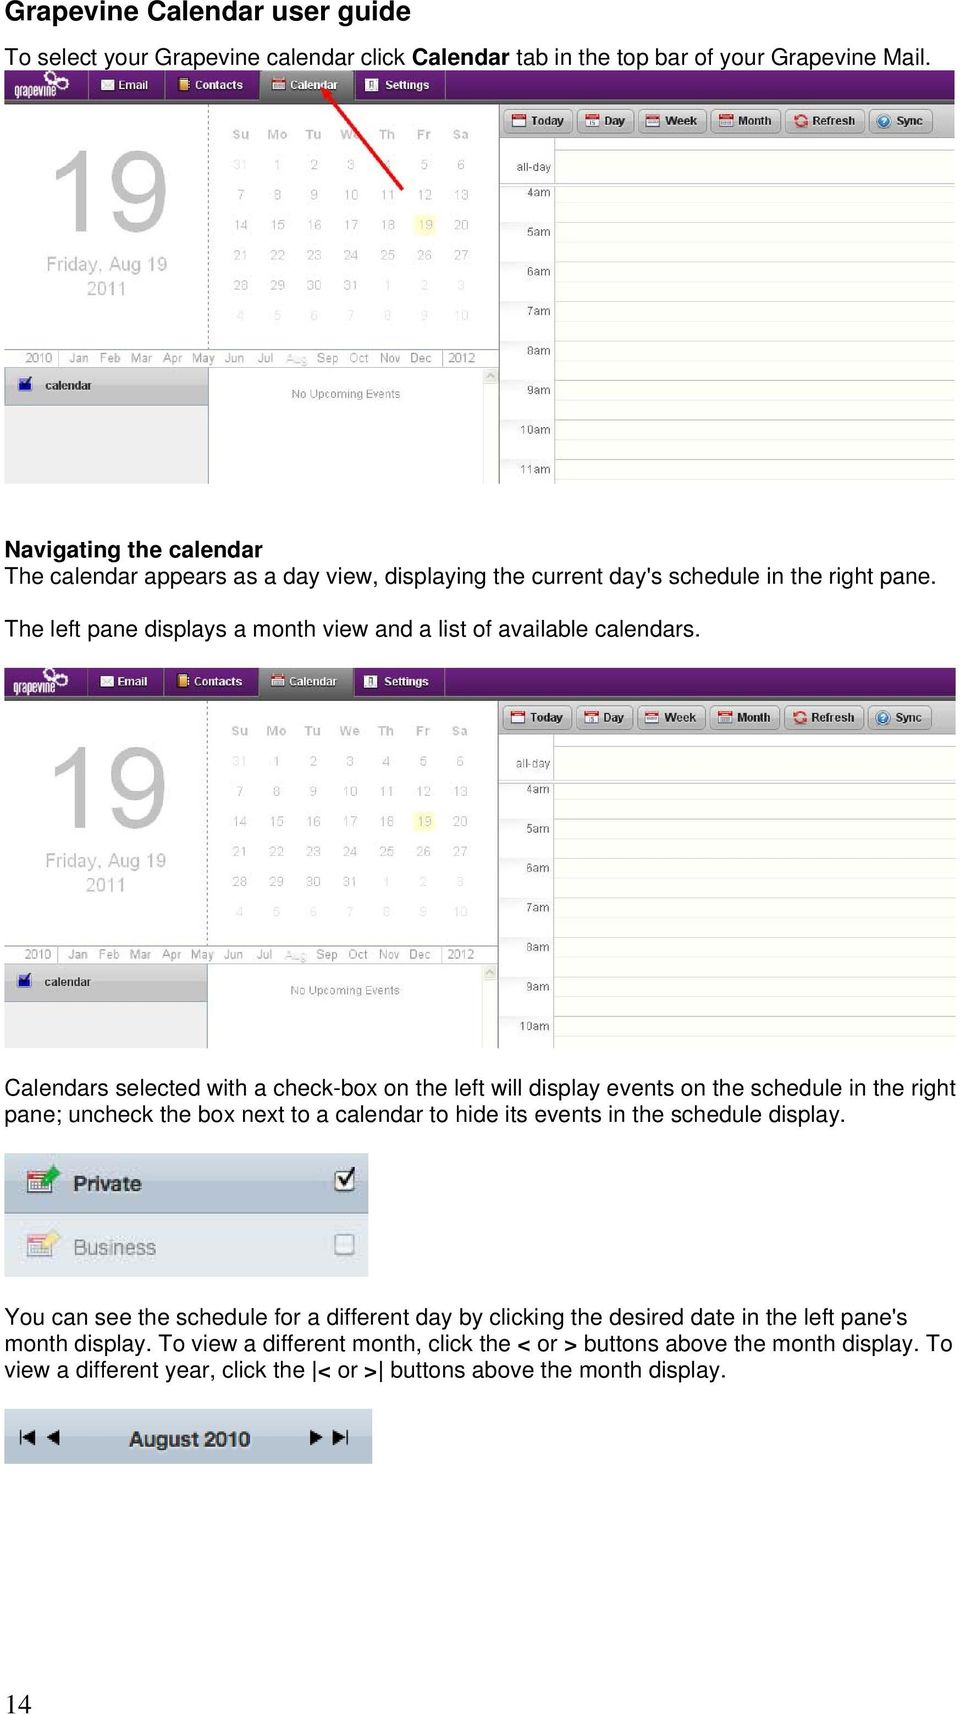 Calendars selected with a check-box on the left will display events on the schedule in the right pane; uncheck the box next to a calendar to hide its events in the schedule display.